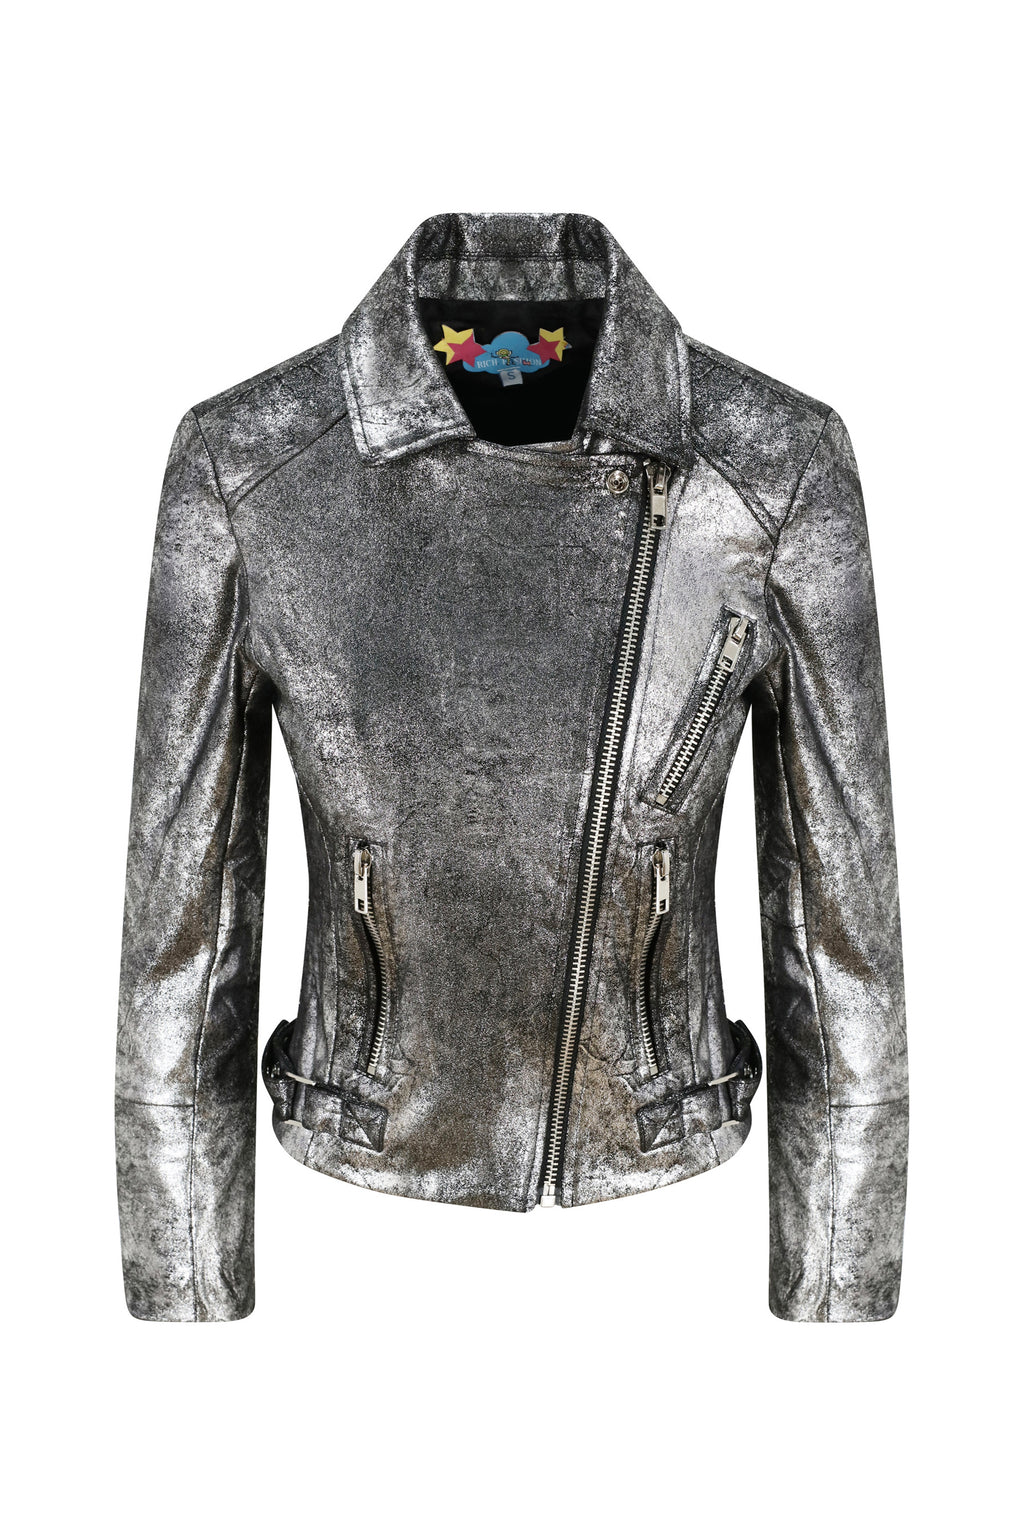 Metallic Silver Biker Jacket